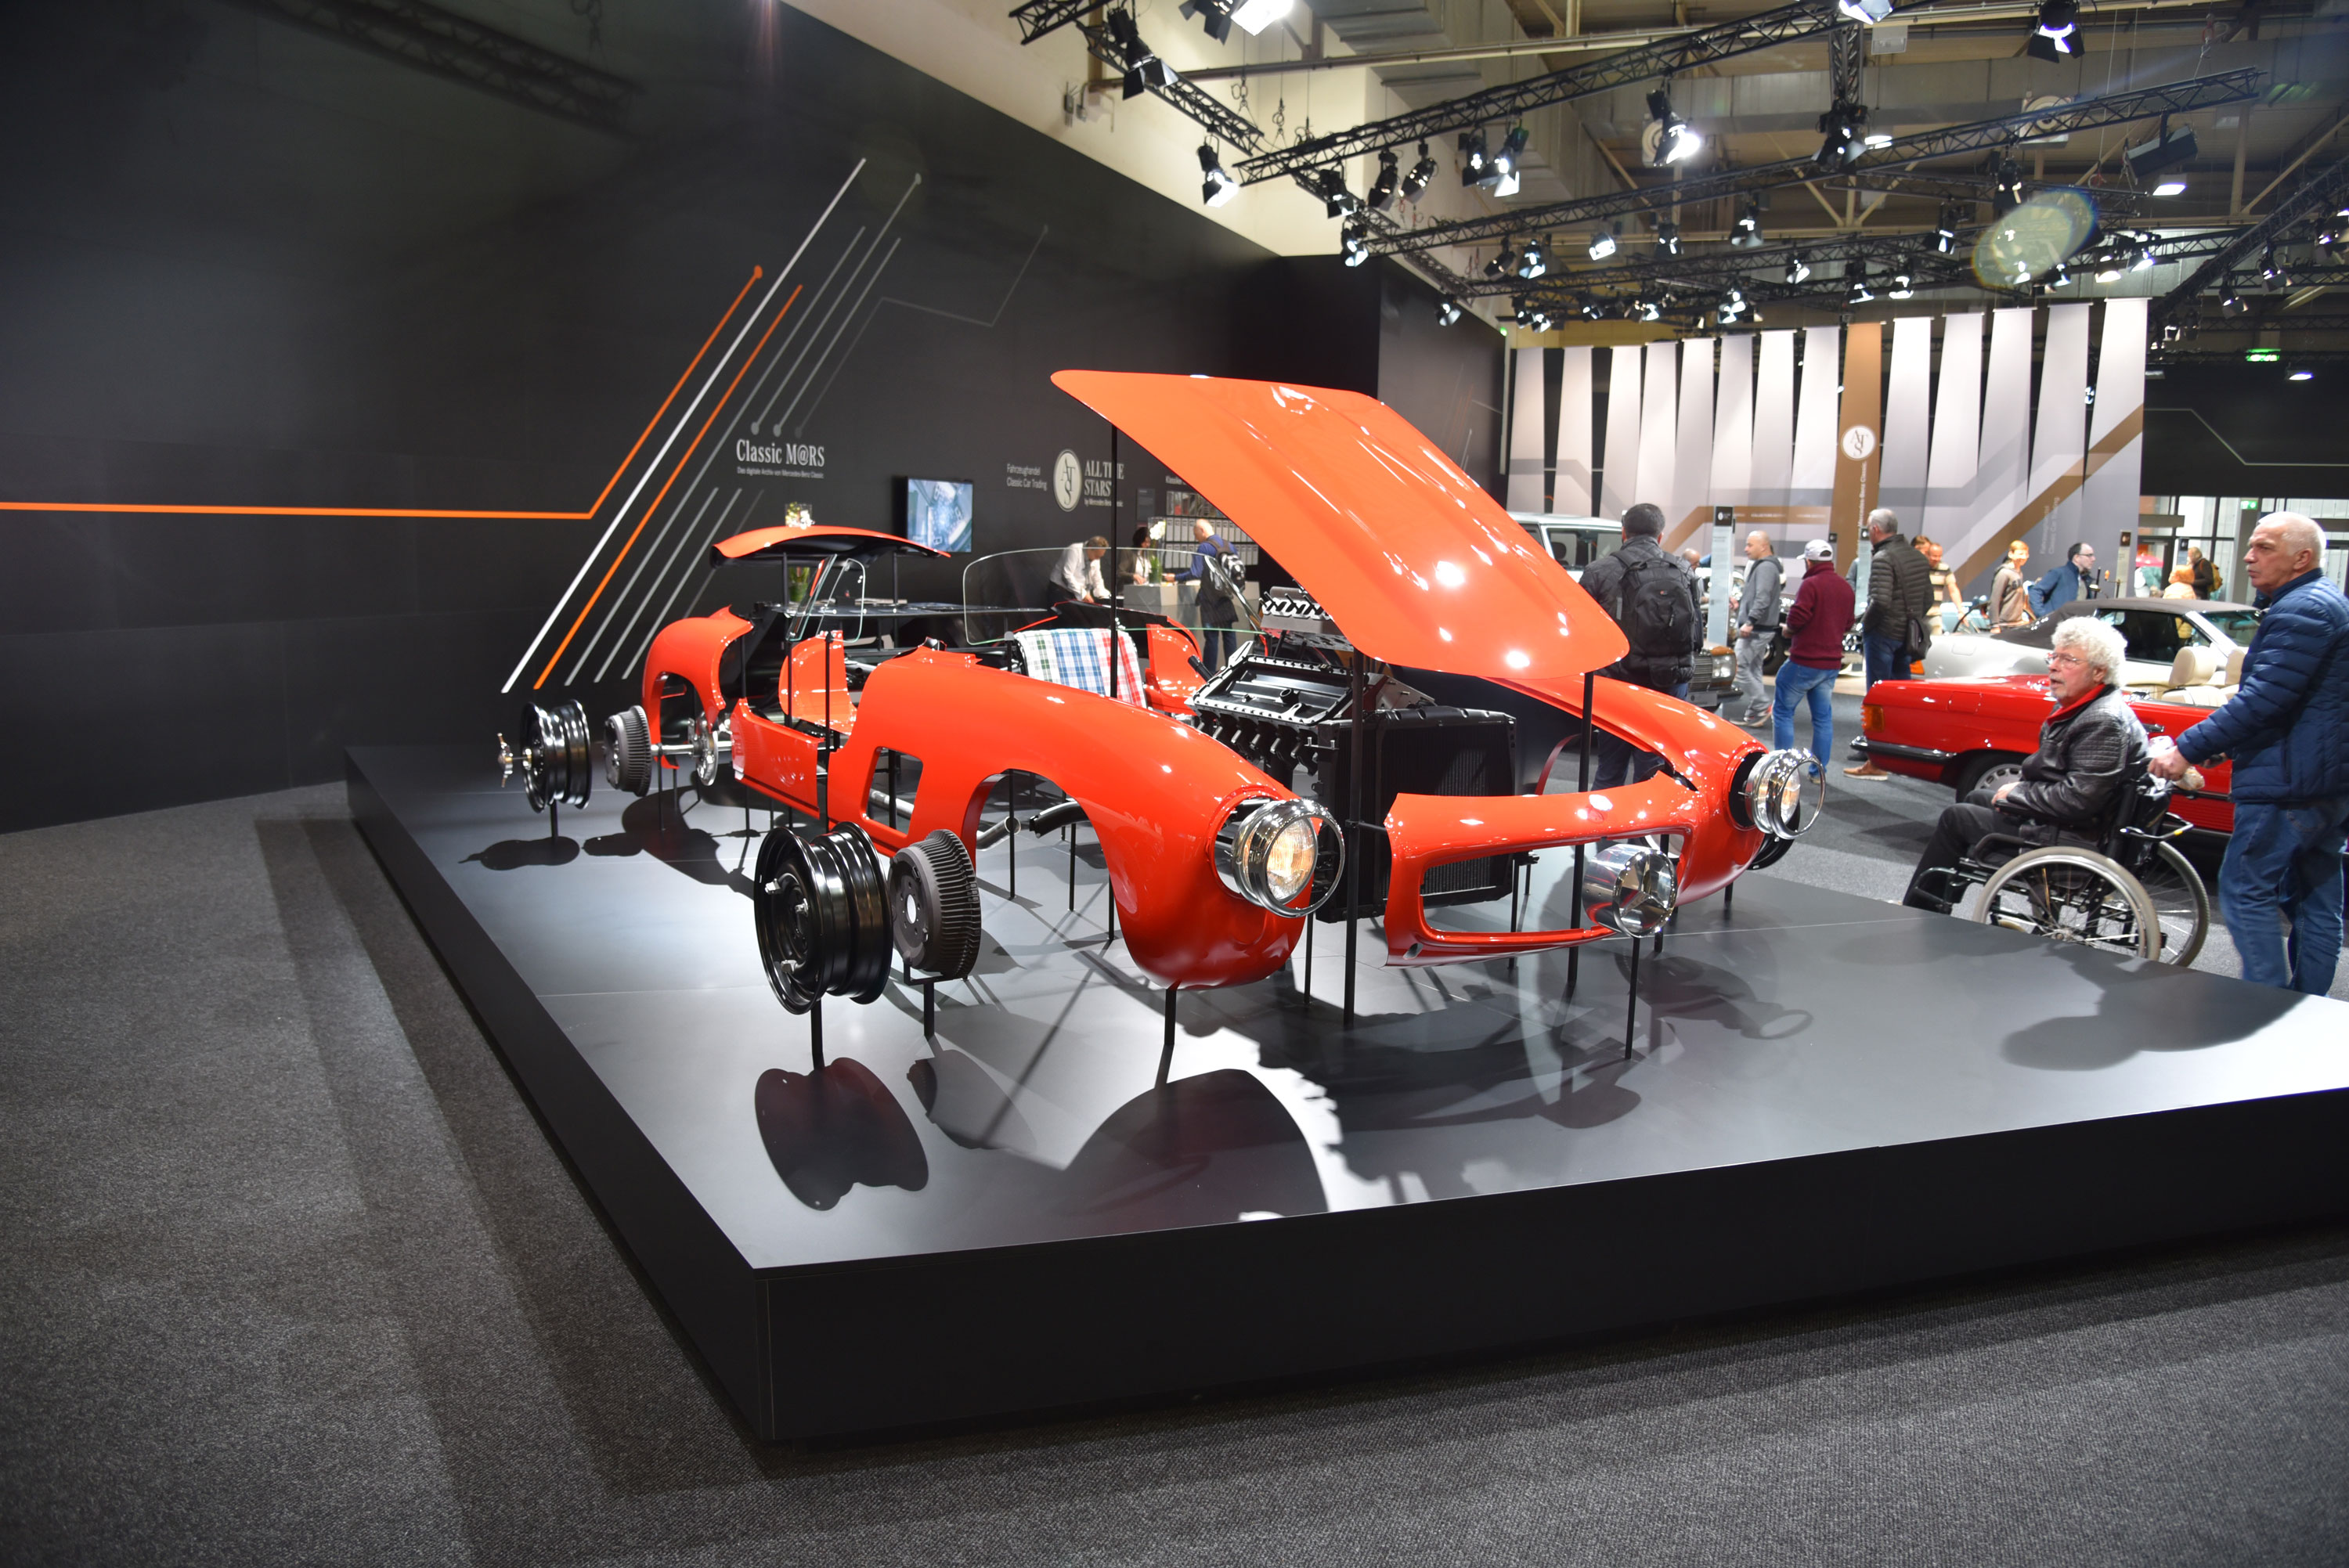 Factory parts and restoration programs were lavishly promoted on corporate stands, such as this one from Mercedes-Benz, whose display rivaled that of any new-car auto show for size and number of vehicles.